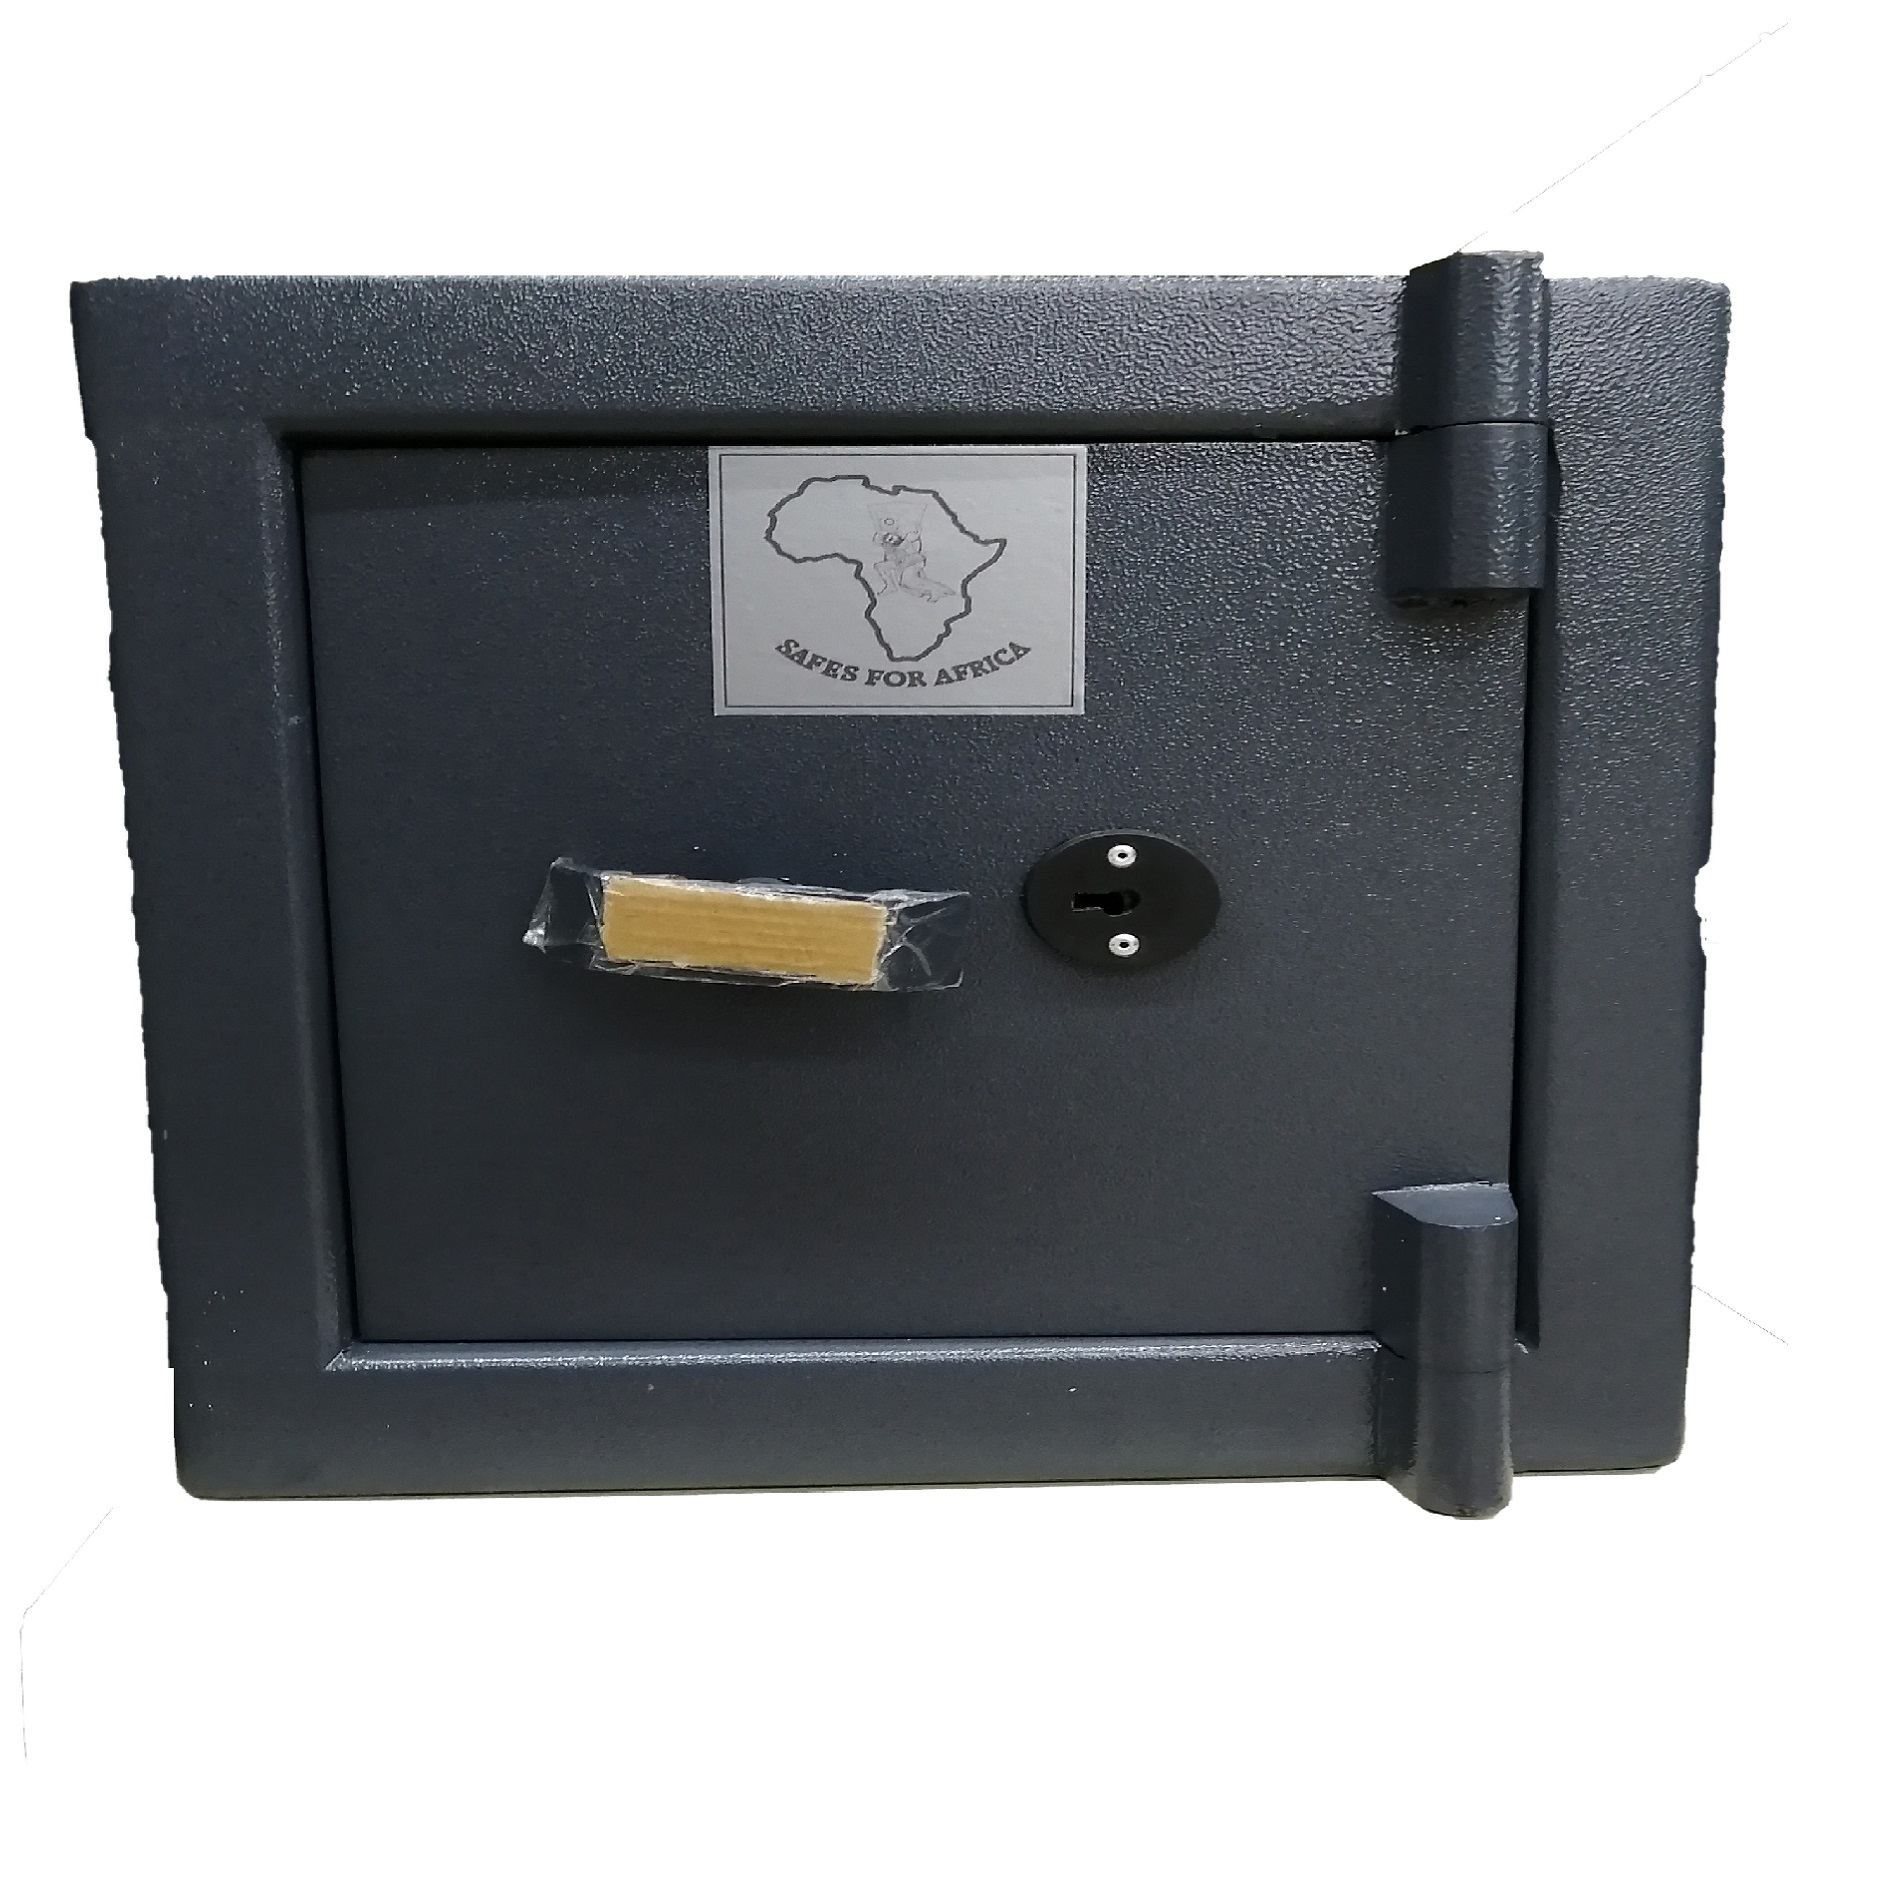 SAFE MINI SECURITY 410X370X330 SAFES FOR AFRICA